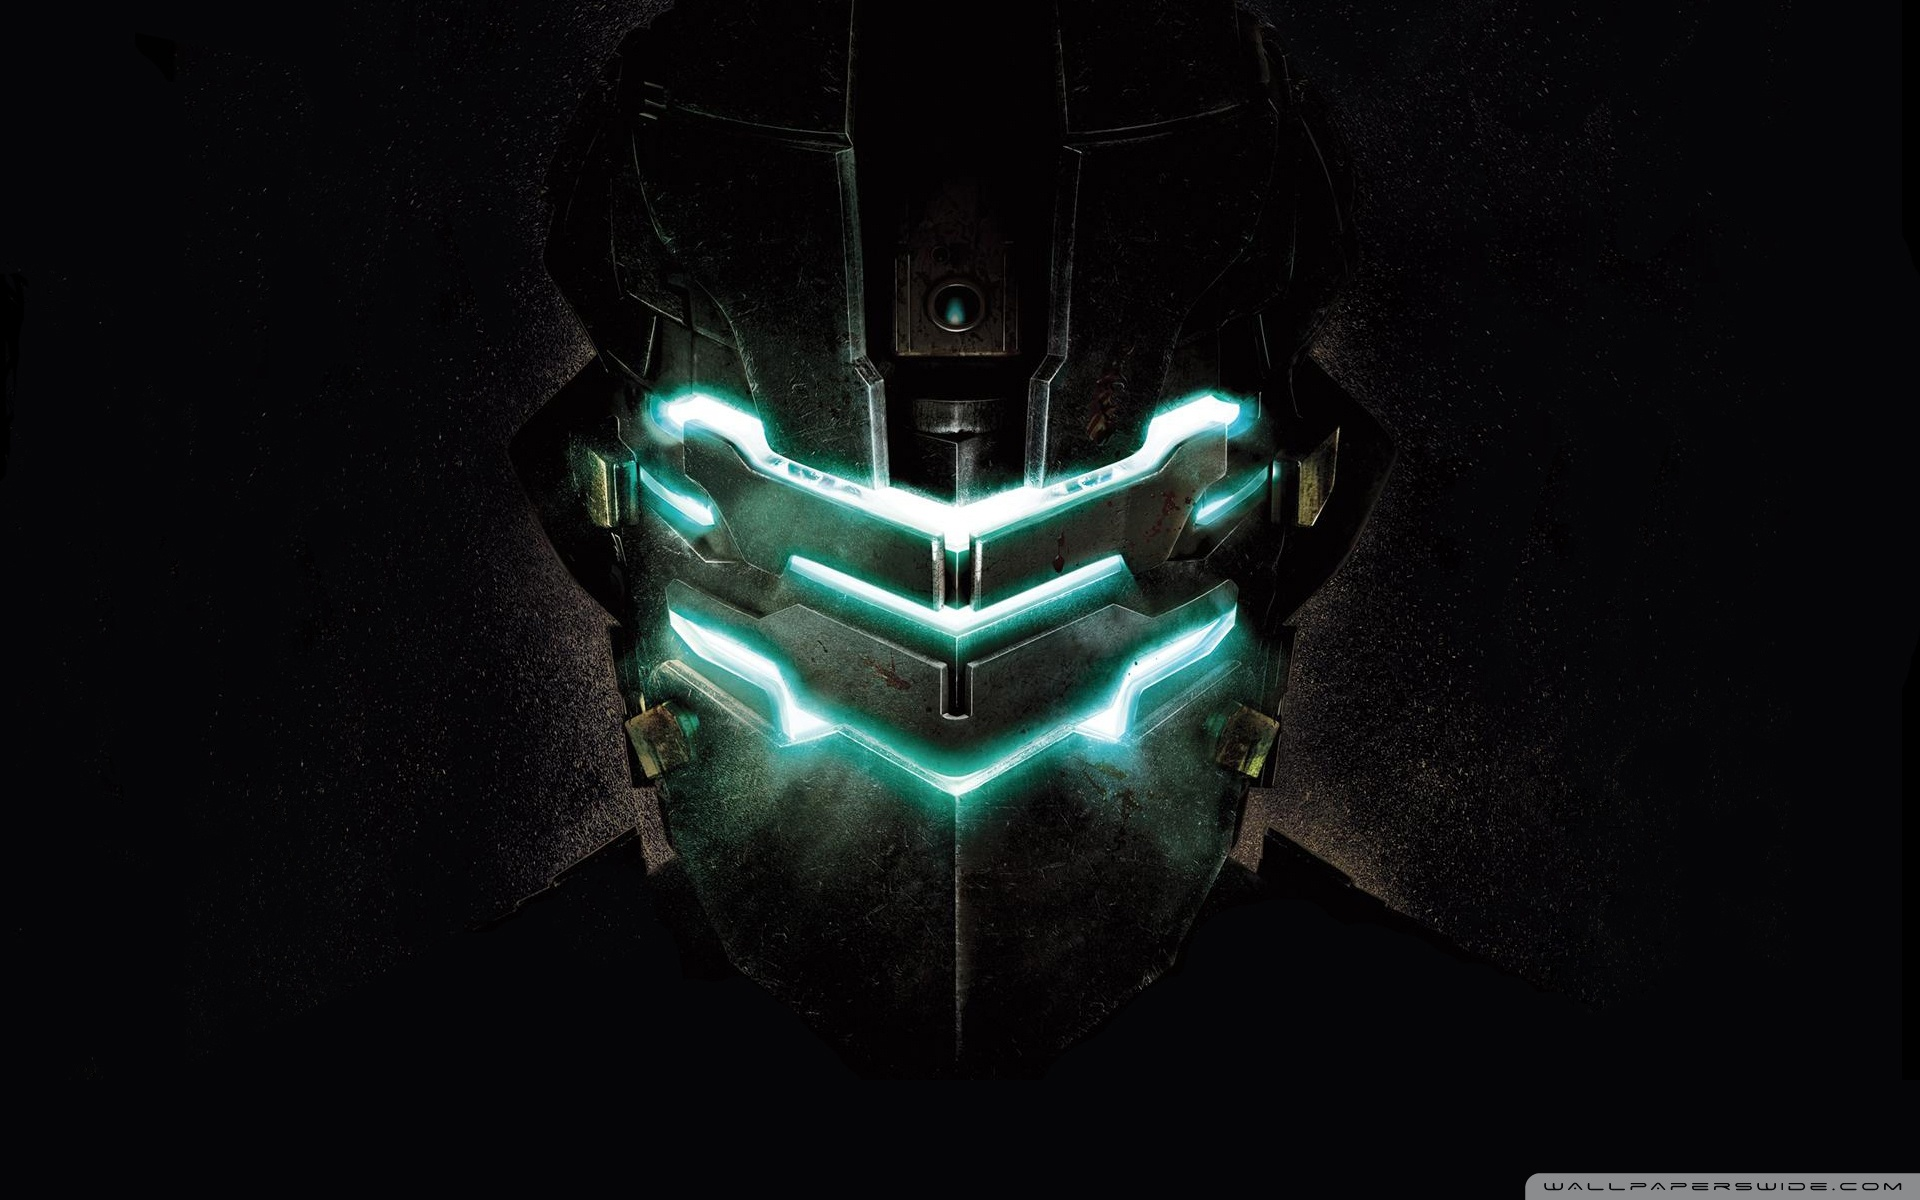 WallpapersWide com | Dead Space HD Desktop Wallpapers for